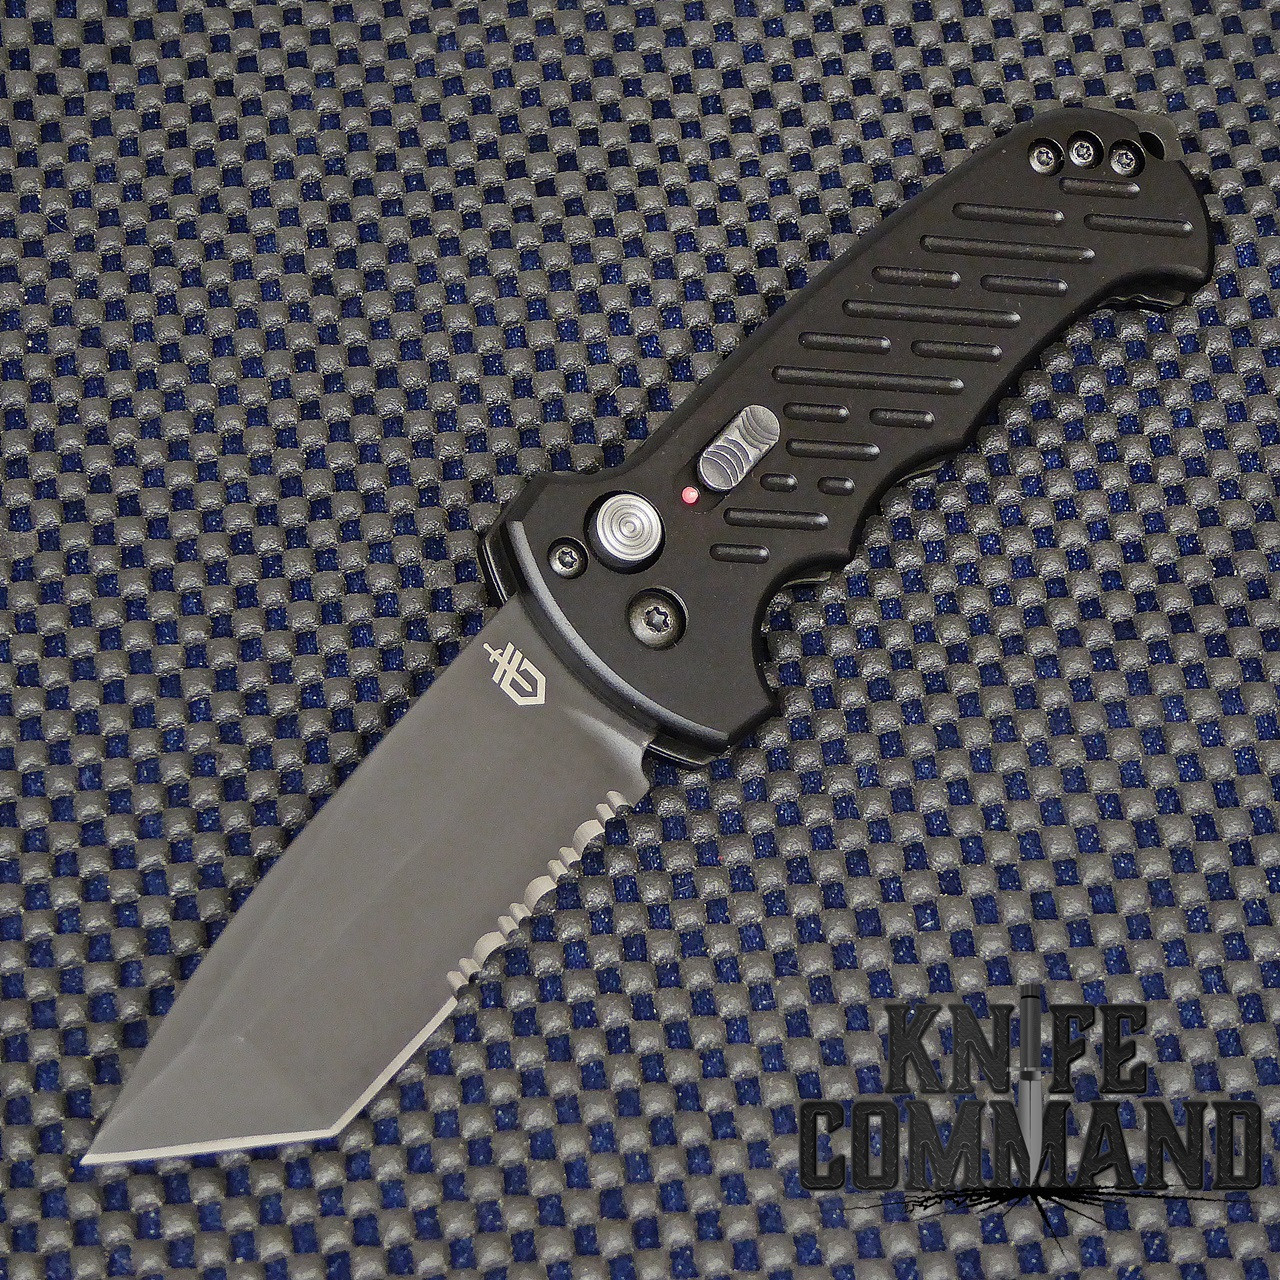 gerber 06 Auto Tanto Blade Automatic Knife Serr 30-000850.  Tanto blade with serrations.